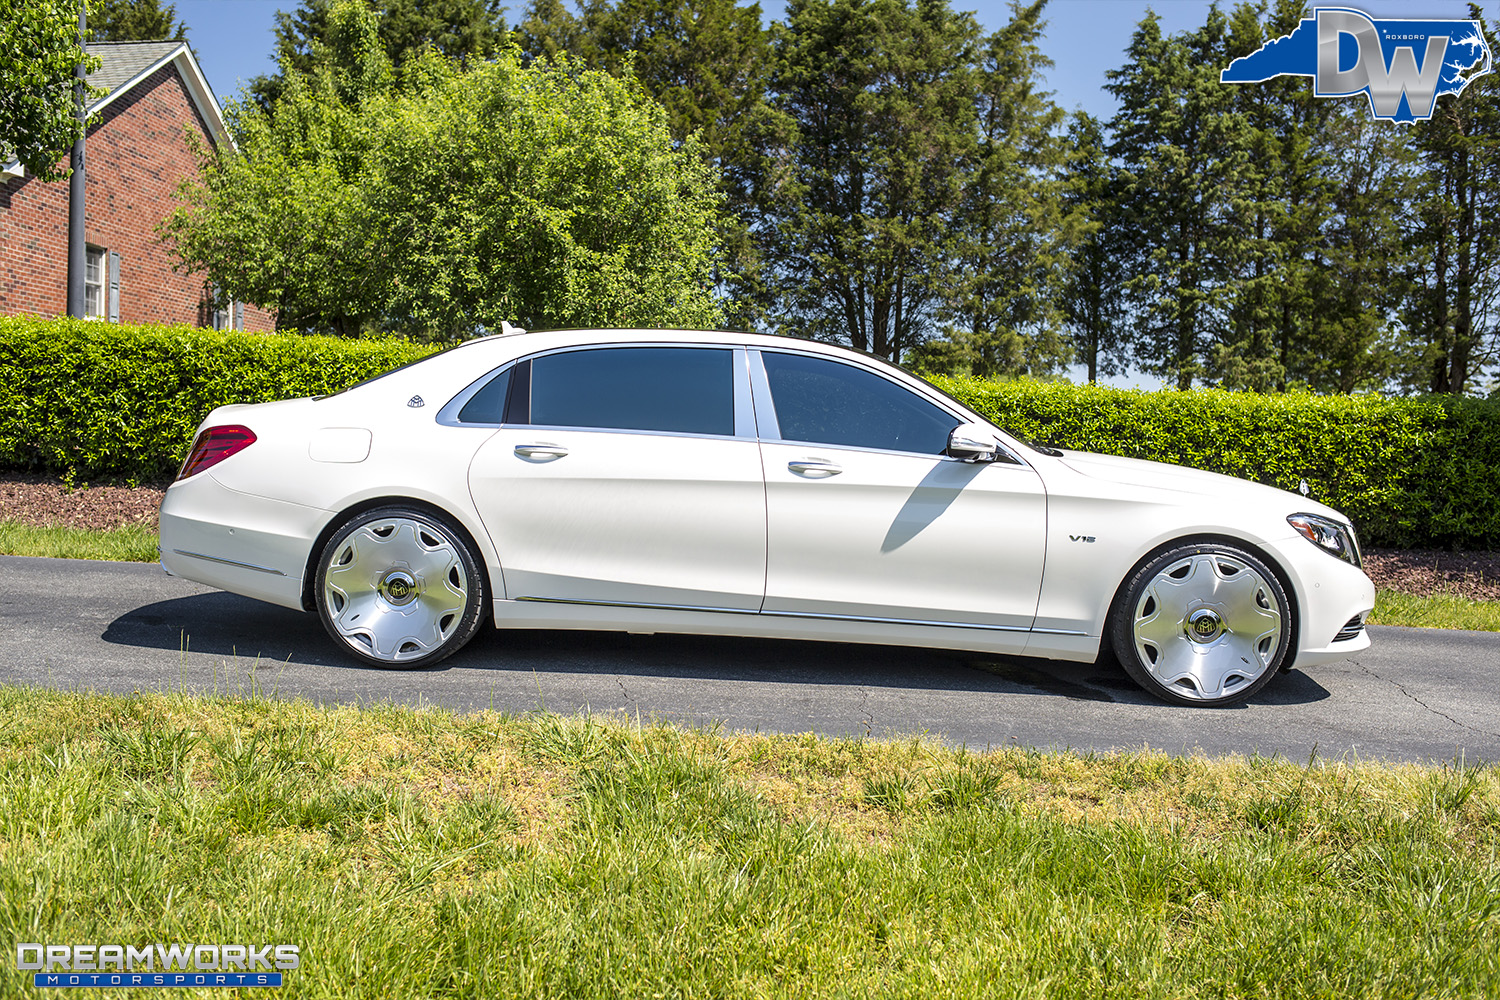 Maybach-S600-Chris-Wilcox-Dreamworks-Motorsports-10.jpg